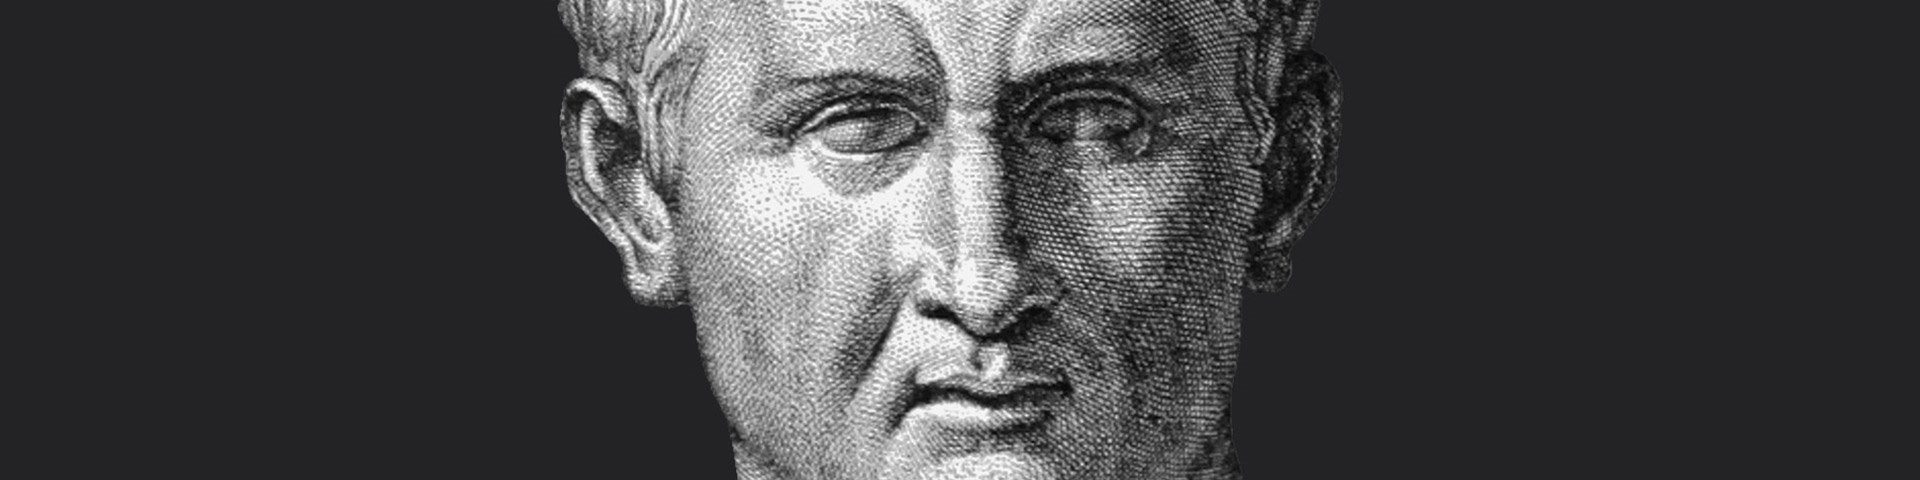 Cicero: The rise and fall of an upstart